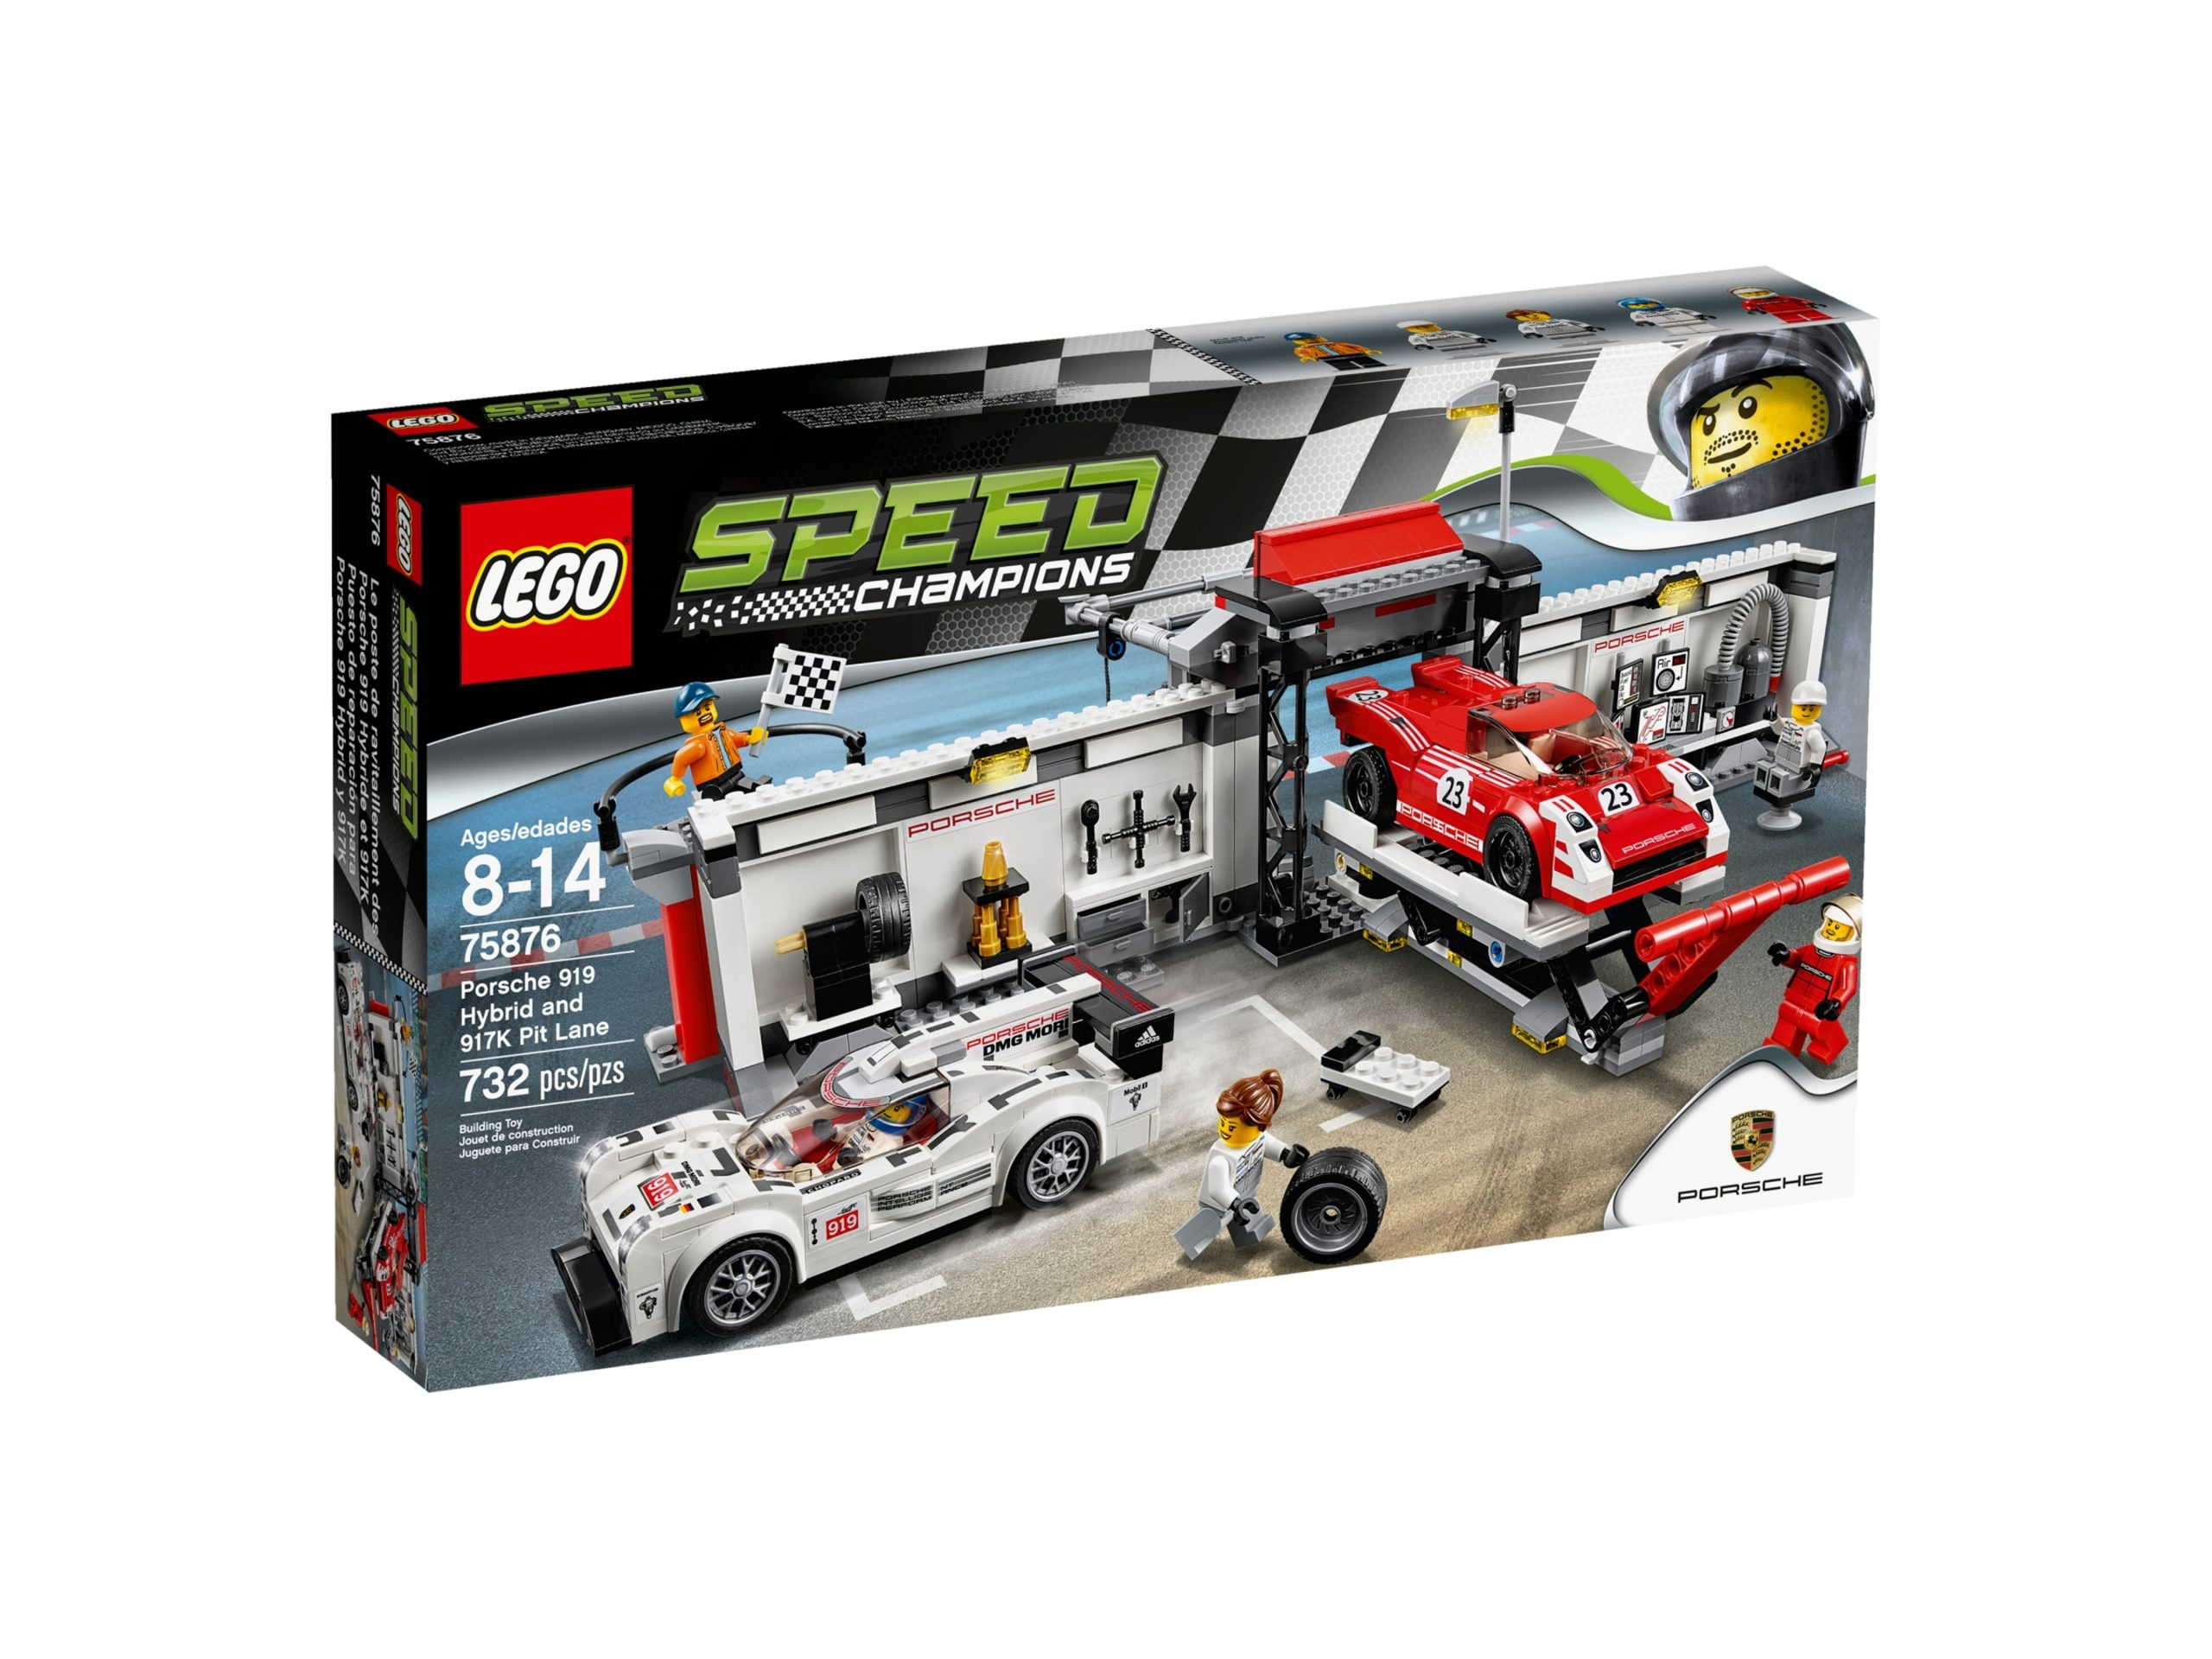 lego 75876 porsche 919 hybrid and 917k pit lane scaled